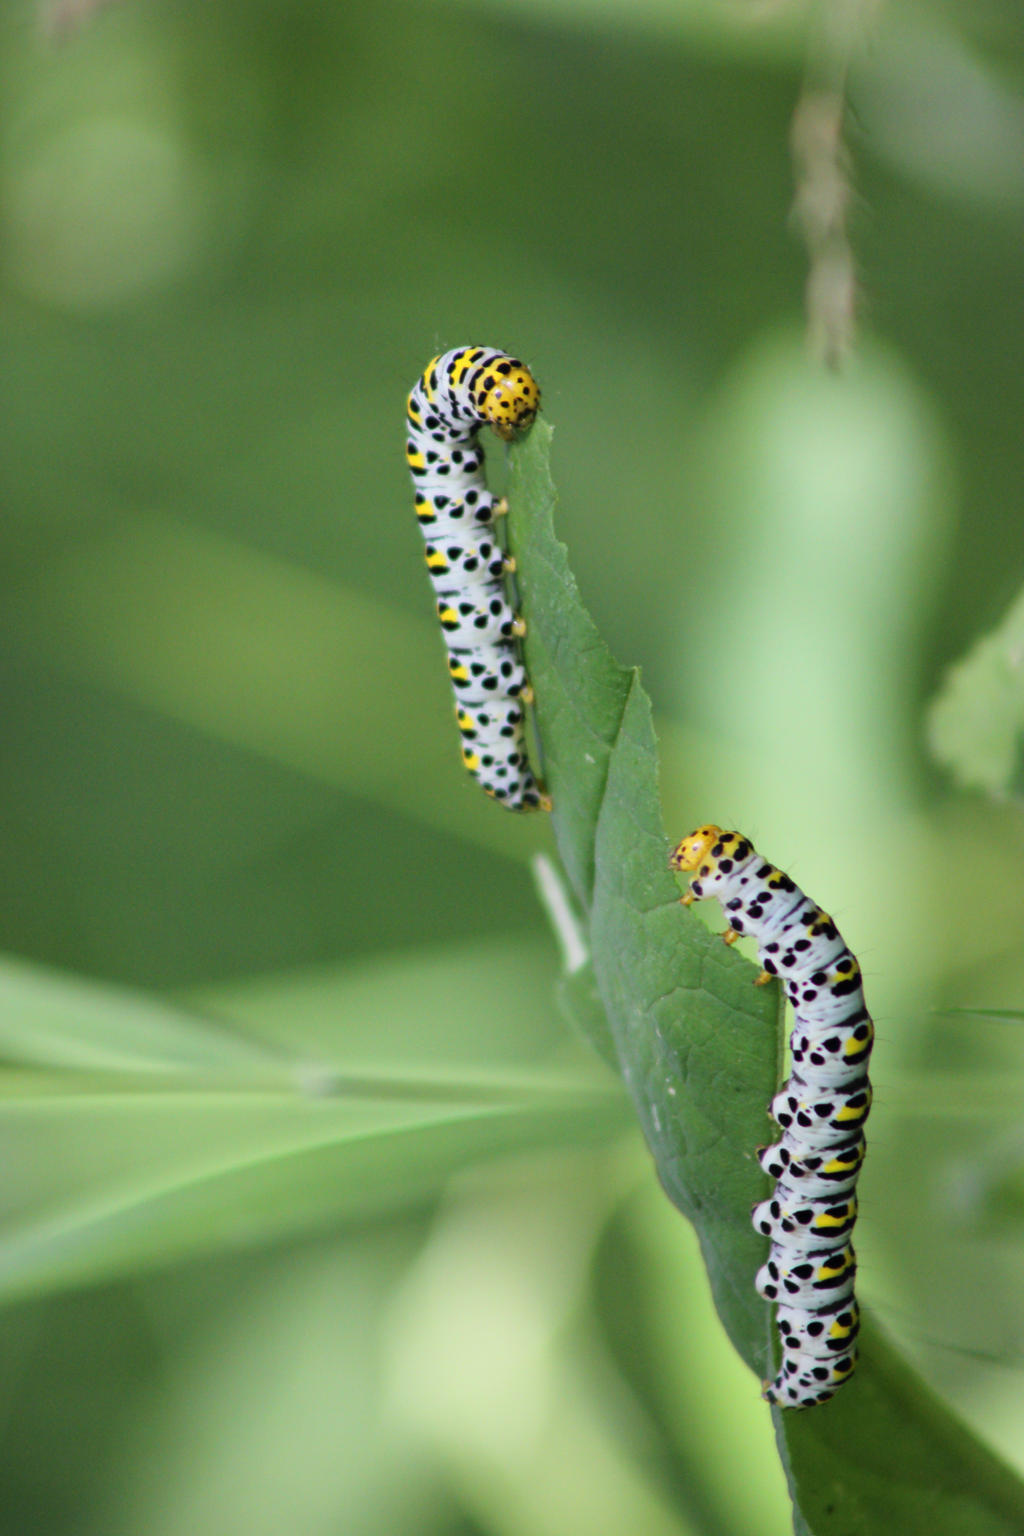 Two caterpillars by JetteReitsma